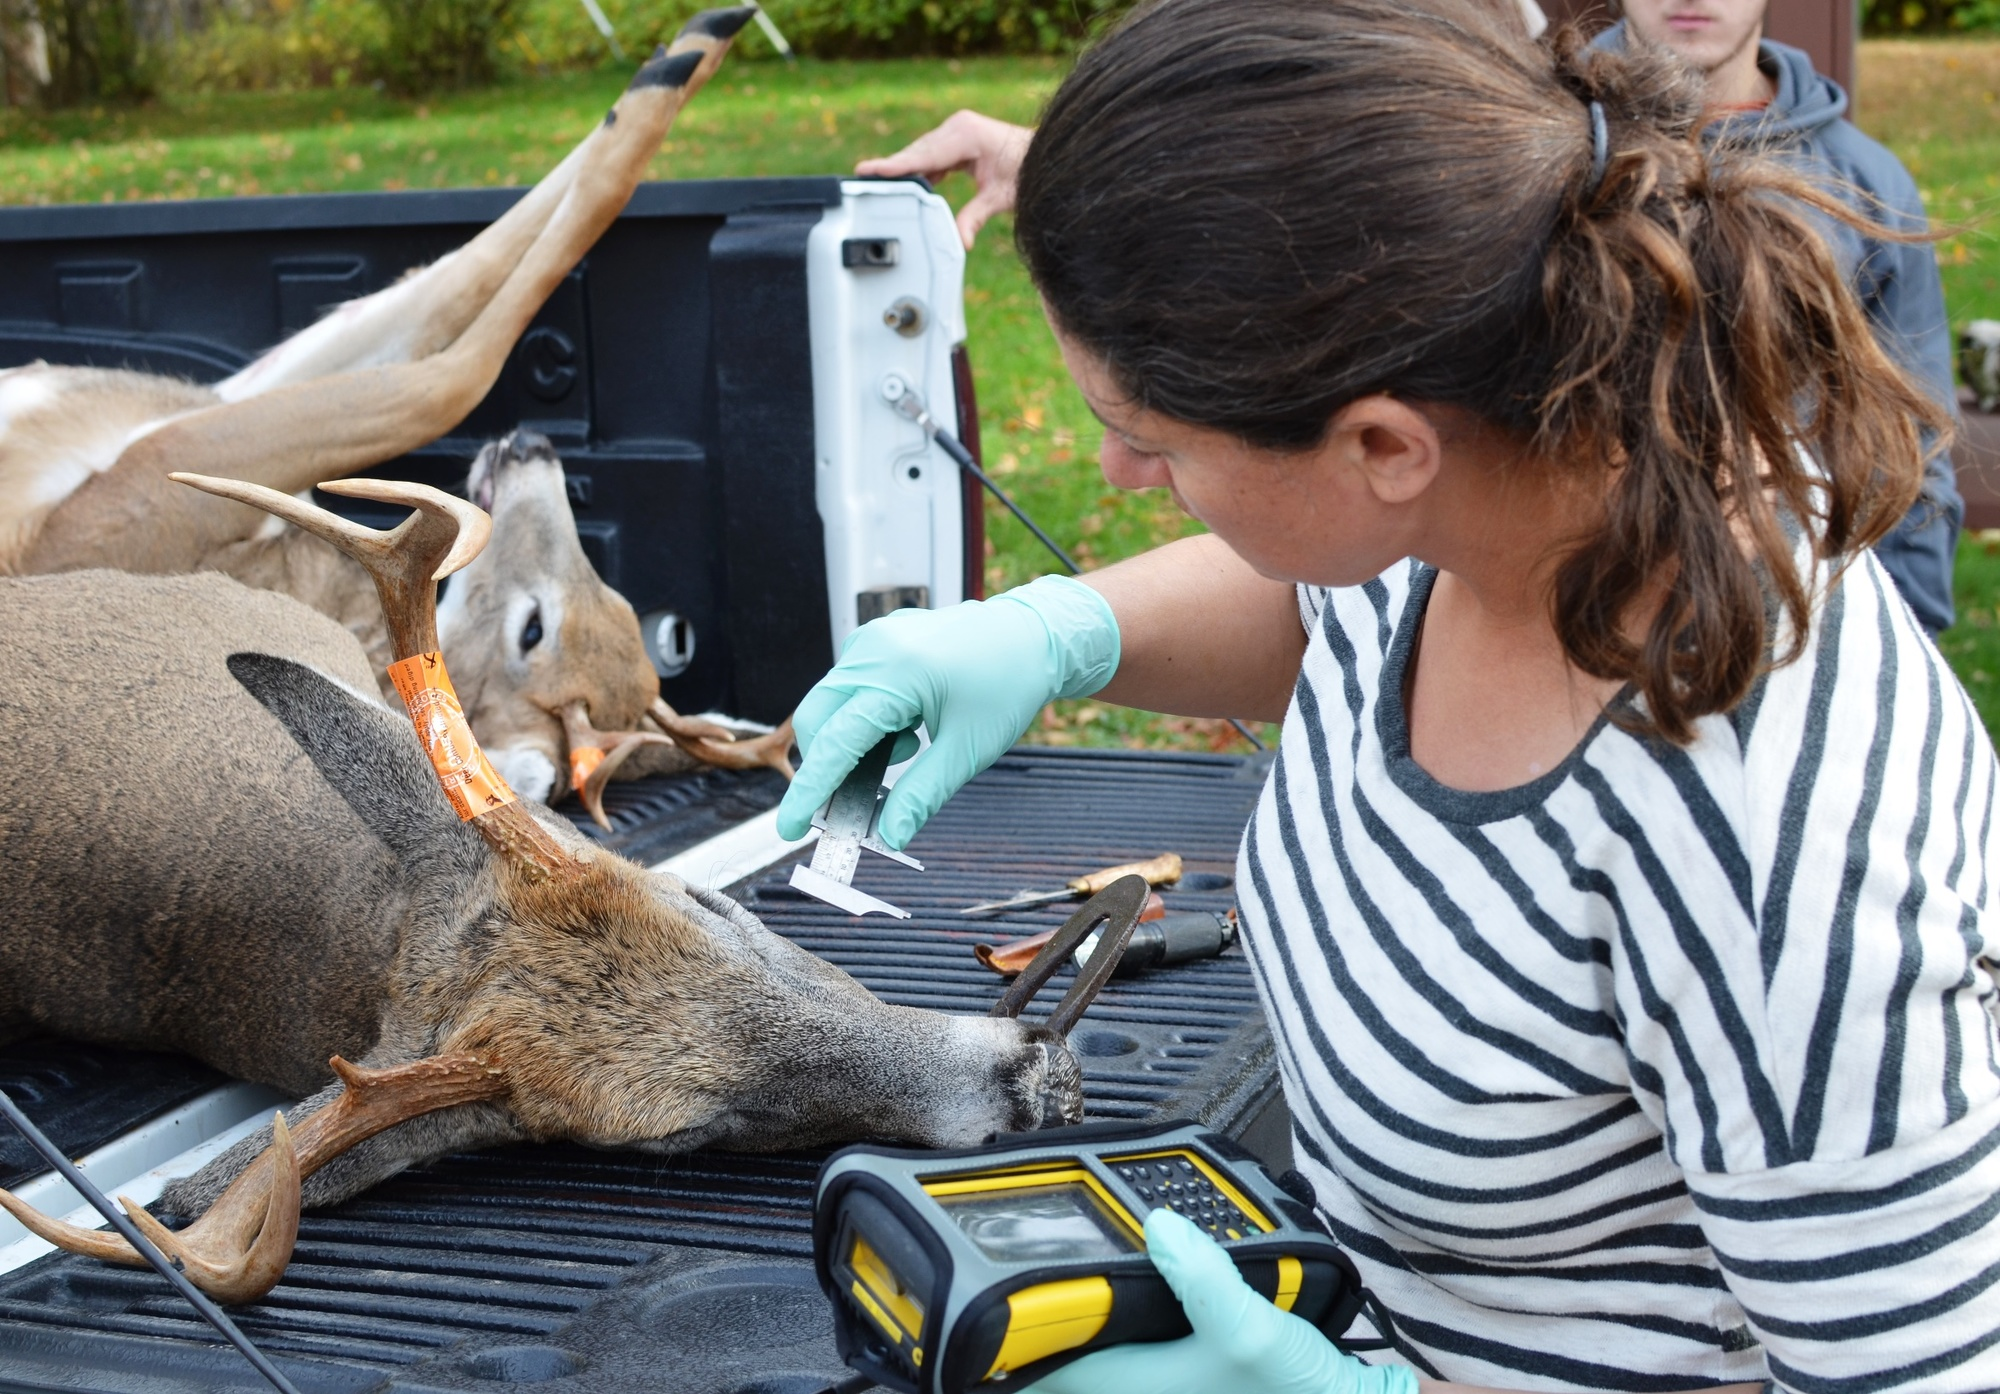 Erin Largent, a DNR research technician, checks a deer at the DNR Customer Service Center in Marquette.